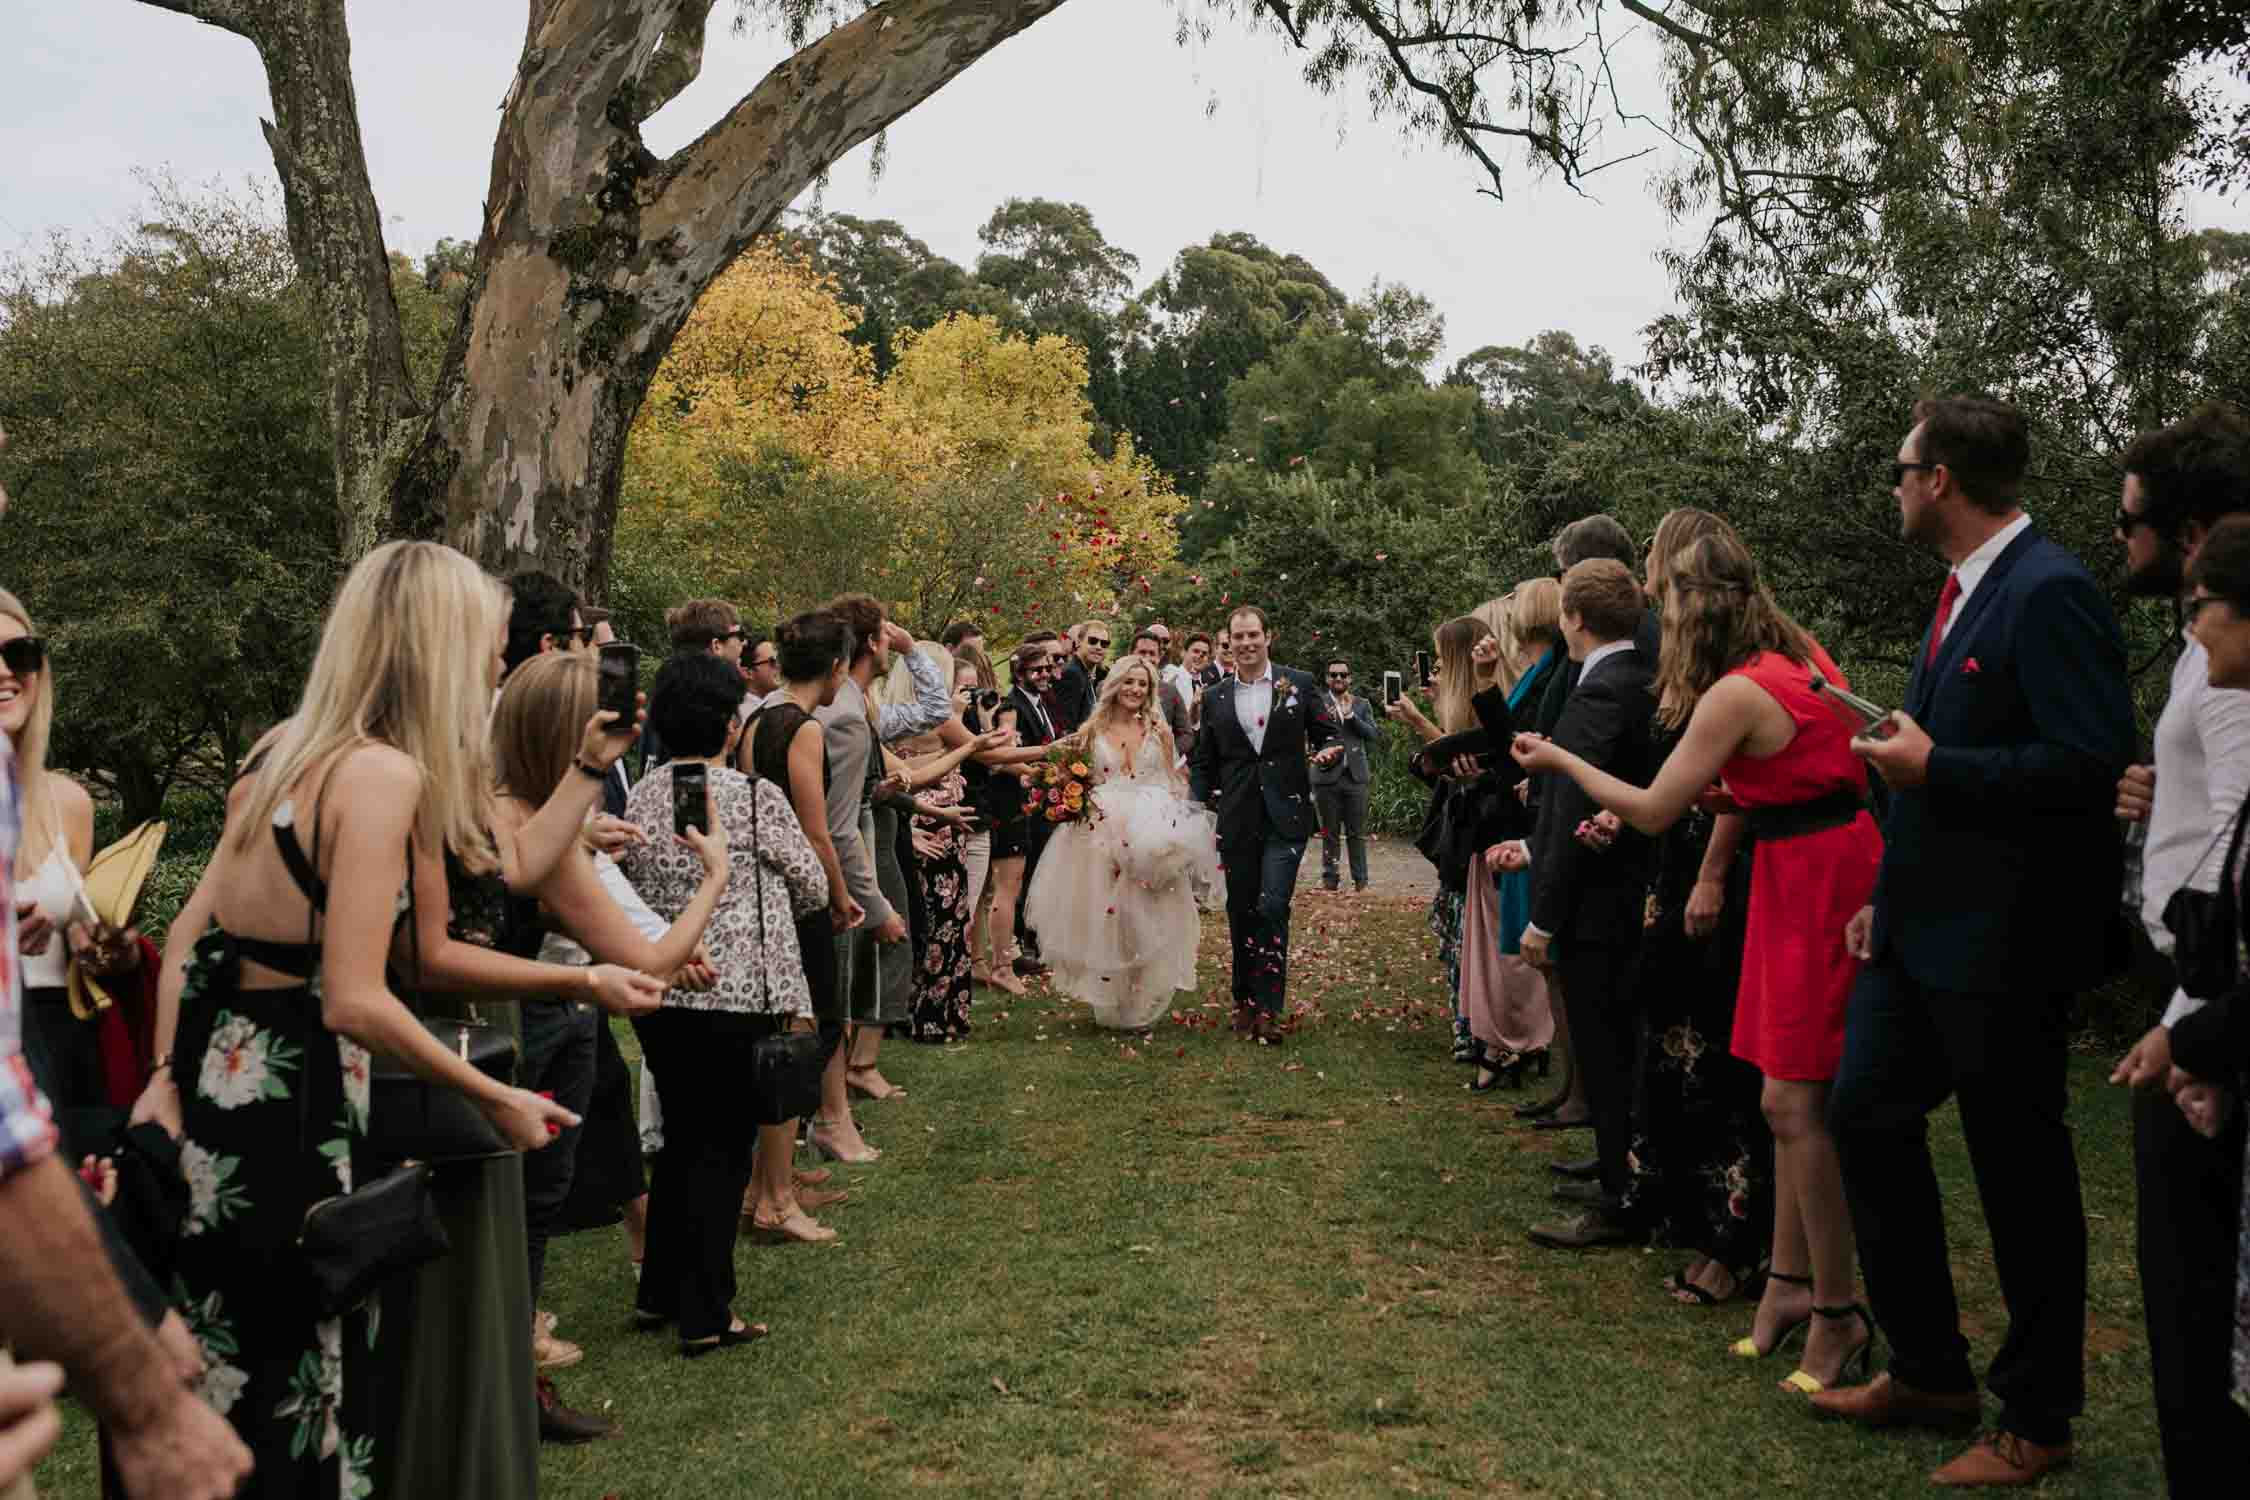 Bride and groom walking down an aisle of friends and family laughing during confetti toss. Emotional moment and photo of bride looking at groom saying his vows during ceremony. Bride wearing a low cut dress with beautiful and detailed beadwork with a skirt that is see through and cute shorts underneath almost like a jump suit underneath a wedding dress. She is holding a wedding bouquet of burnt orange pink and red flowers and roses with dried ferns and grass in it.